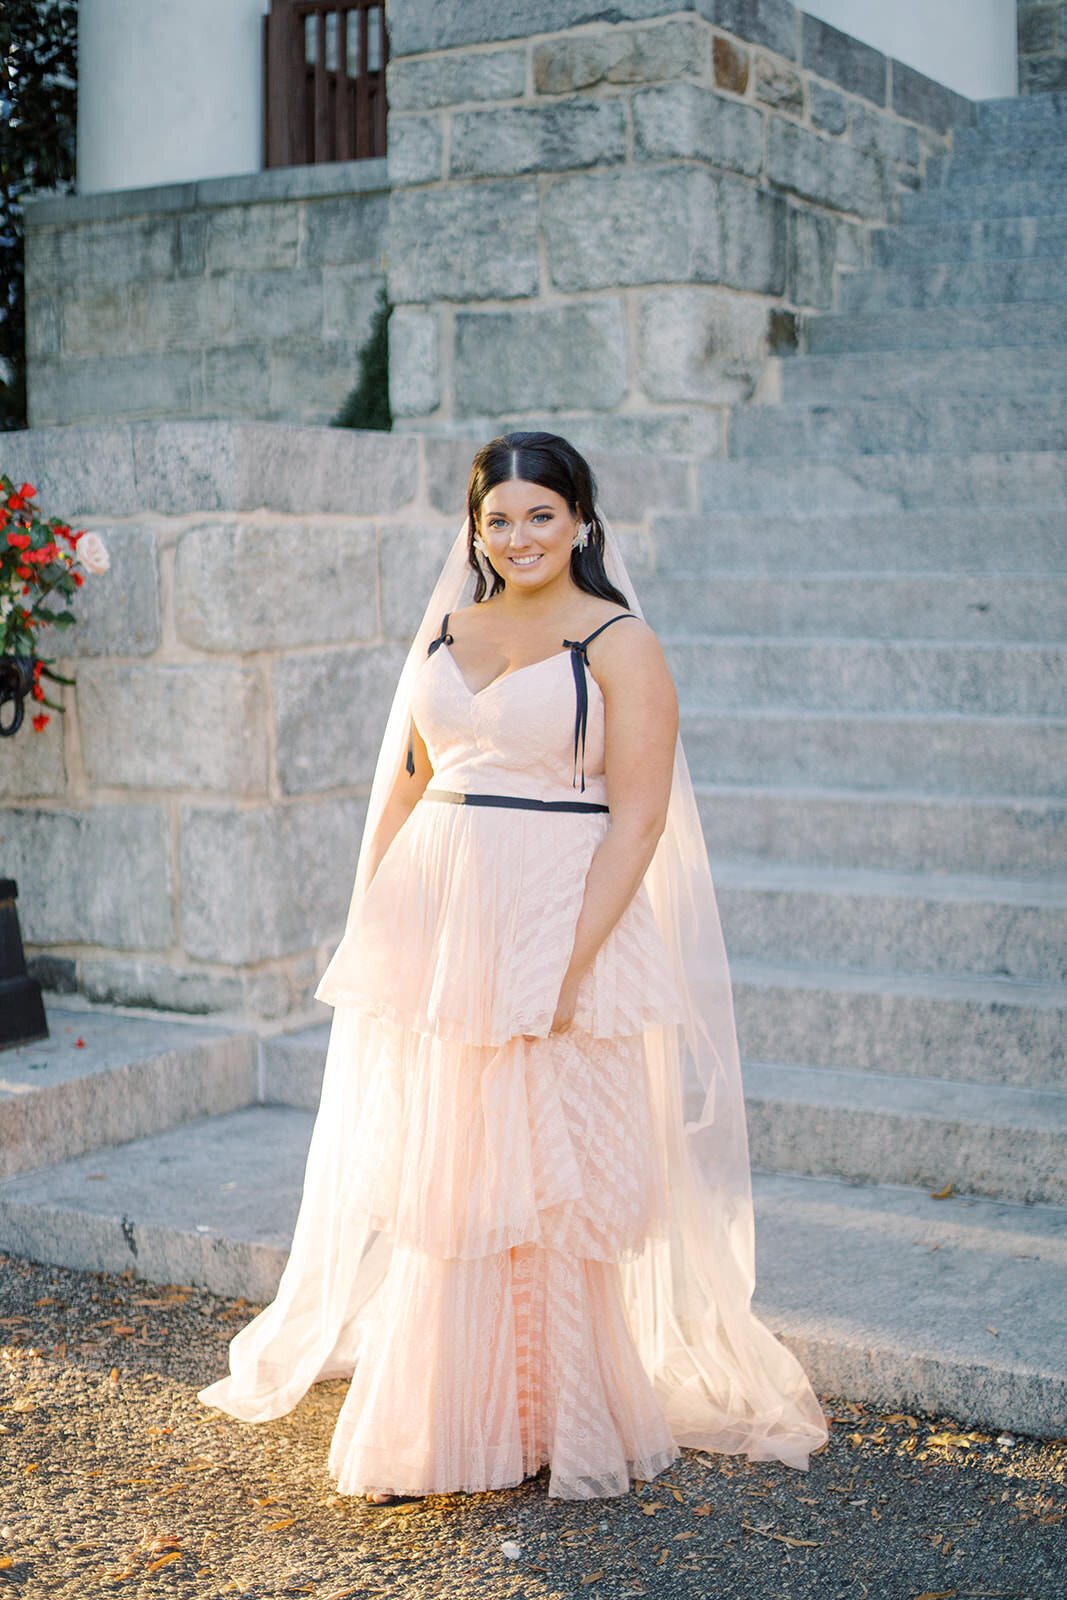 Christine_Andrew_Patapsco_Female_Institute_Maryland_Wedding_Megan_Harris_Photography_Edit_-598